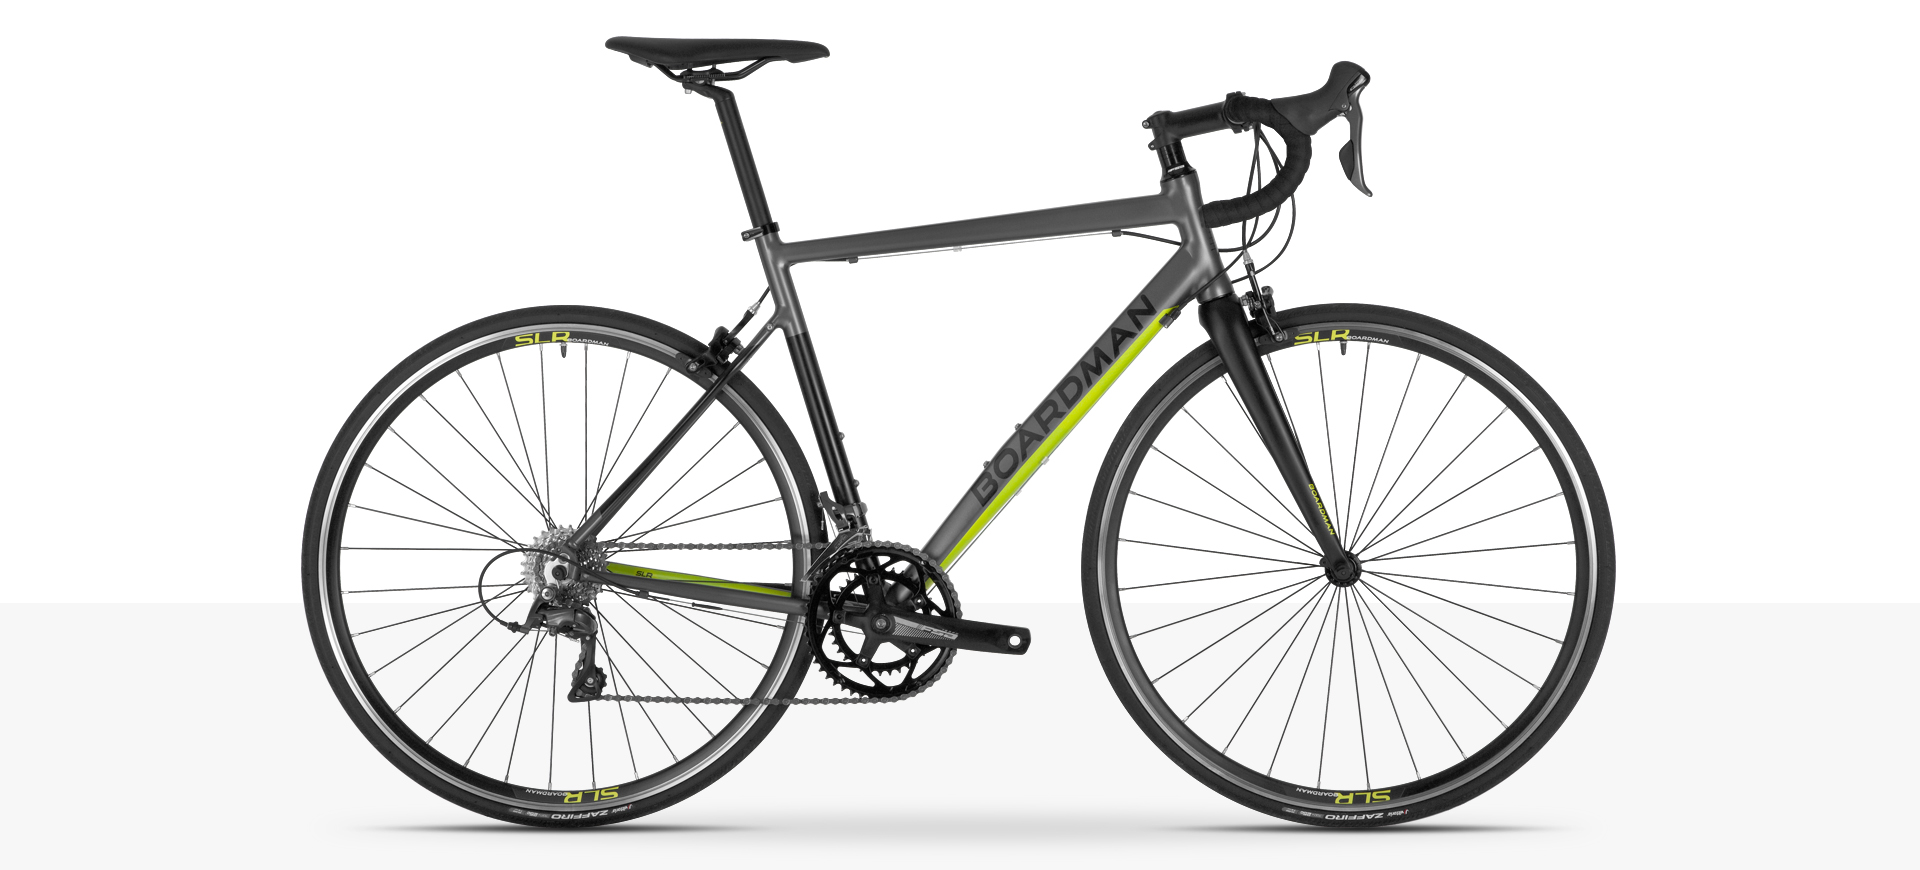 Boardman SLR 8.6 Alloy Road Bike in Grey & Fluro Yellow